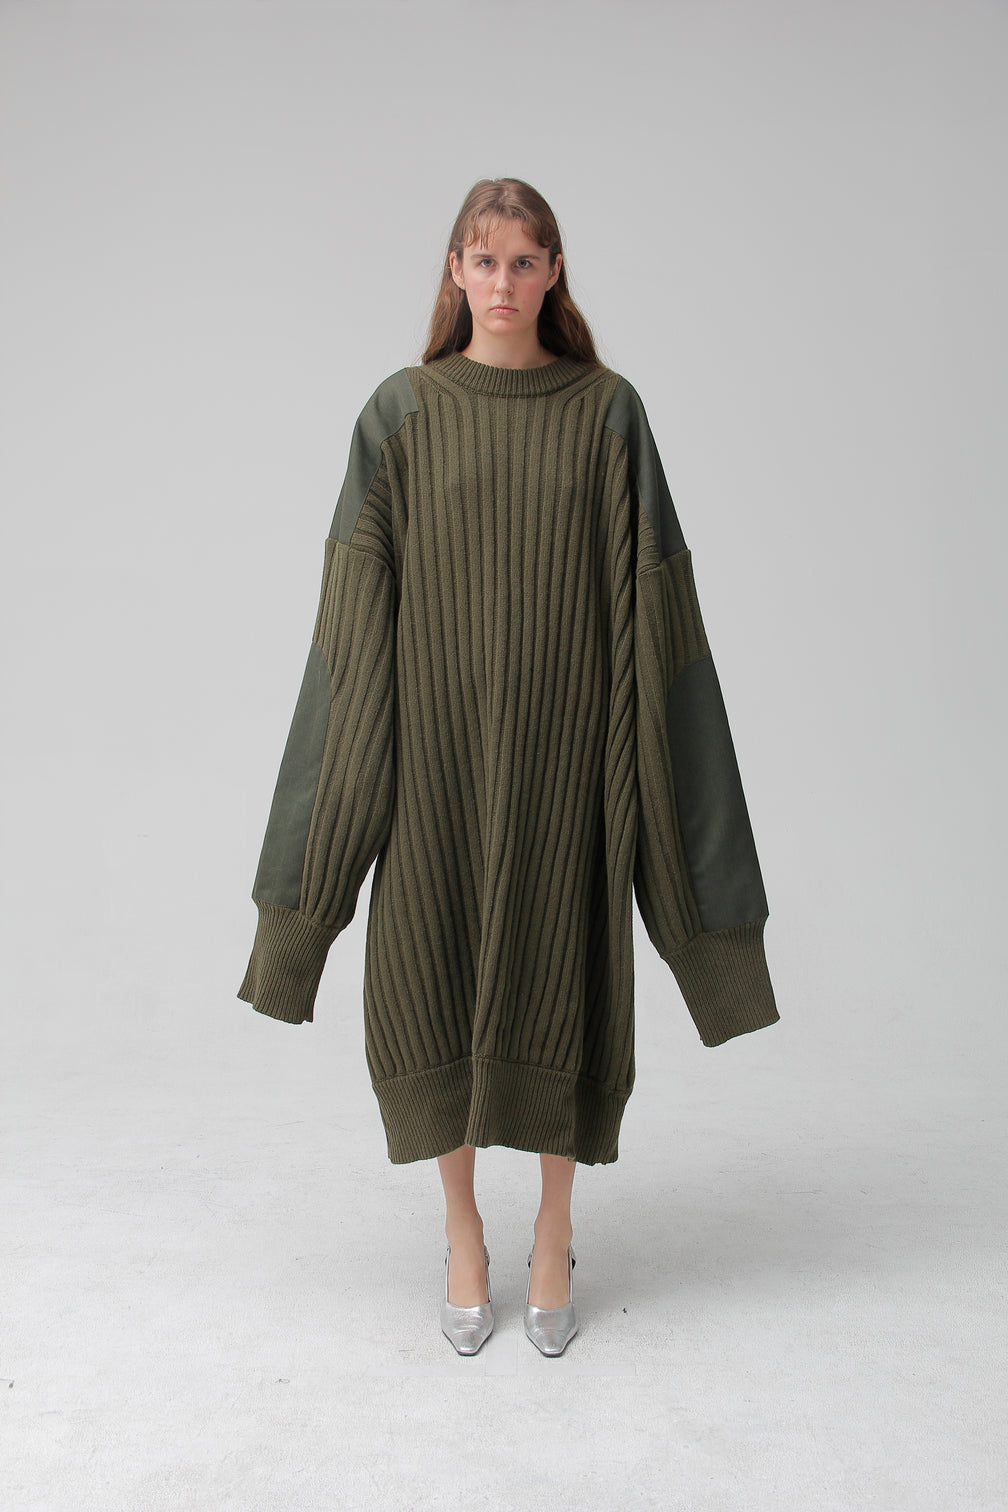 Giant Military Sweater